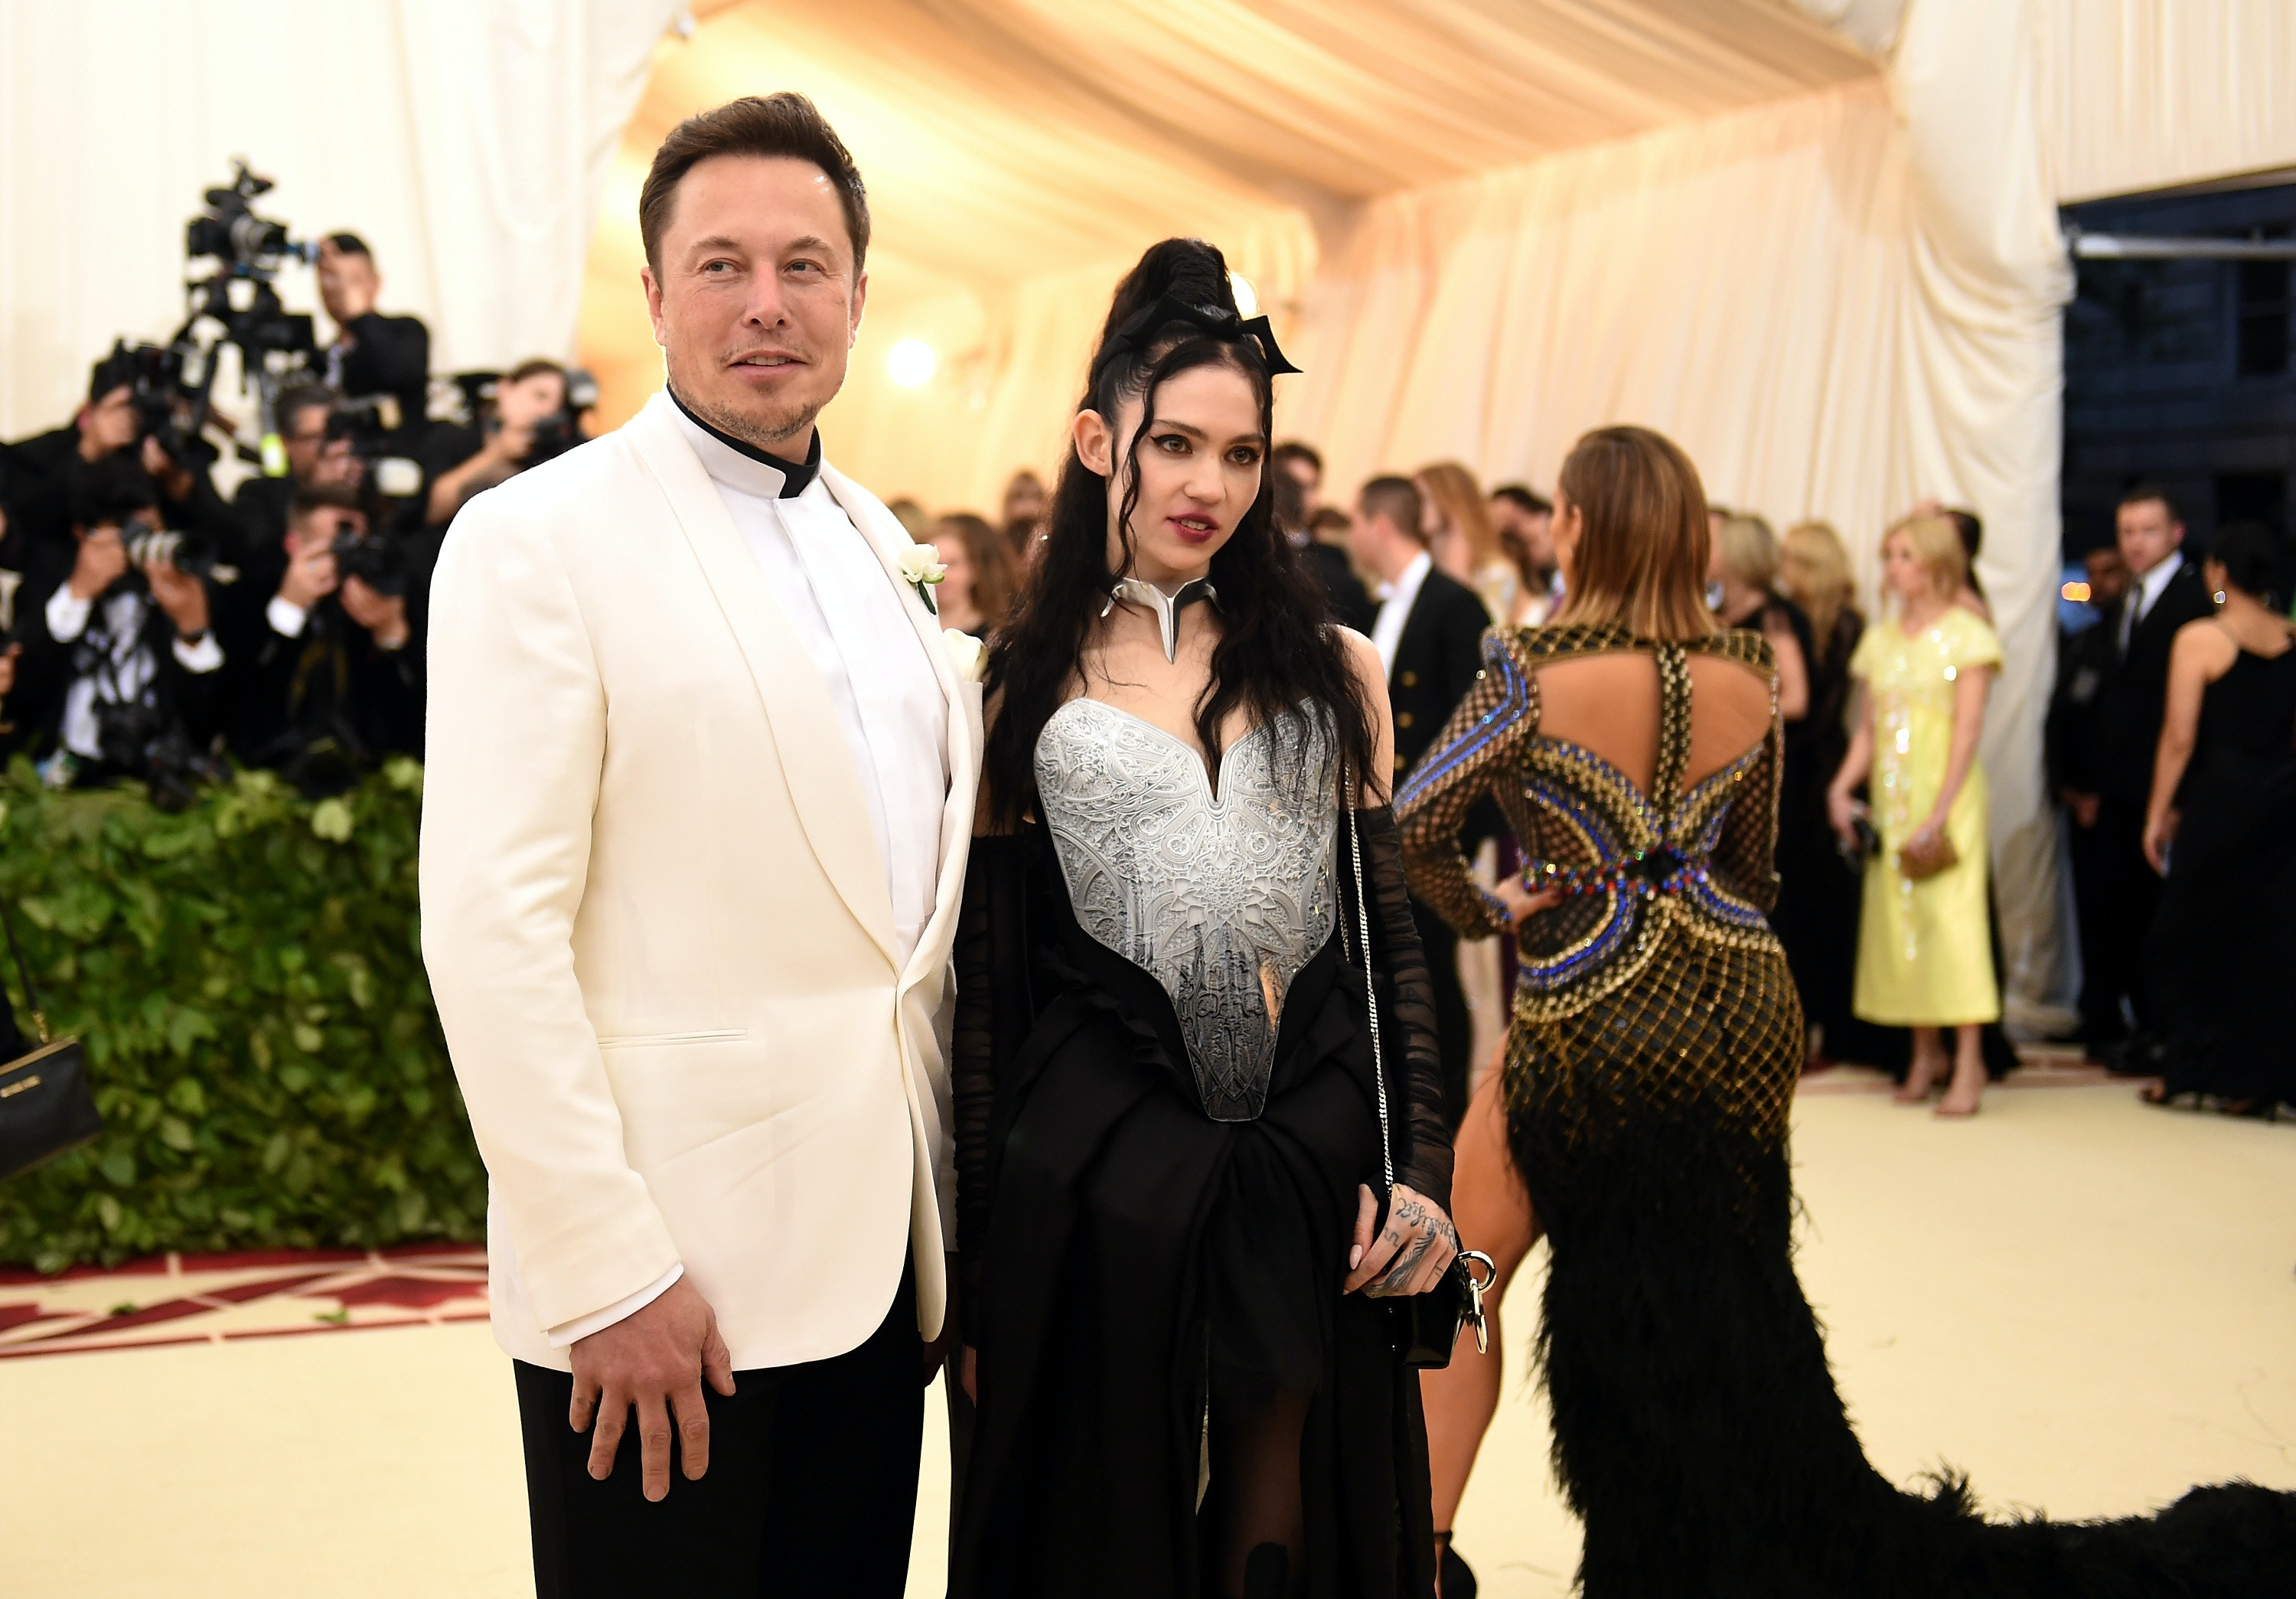 From Grimes to Elon, with love